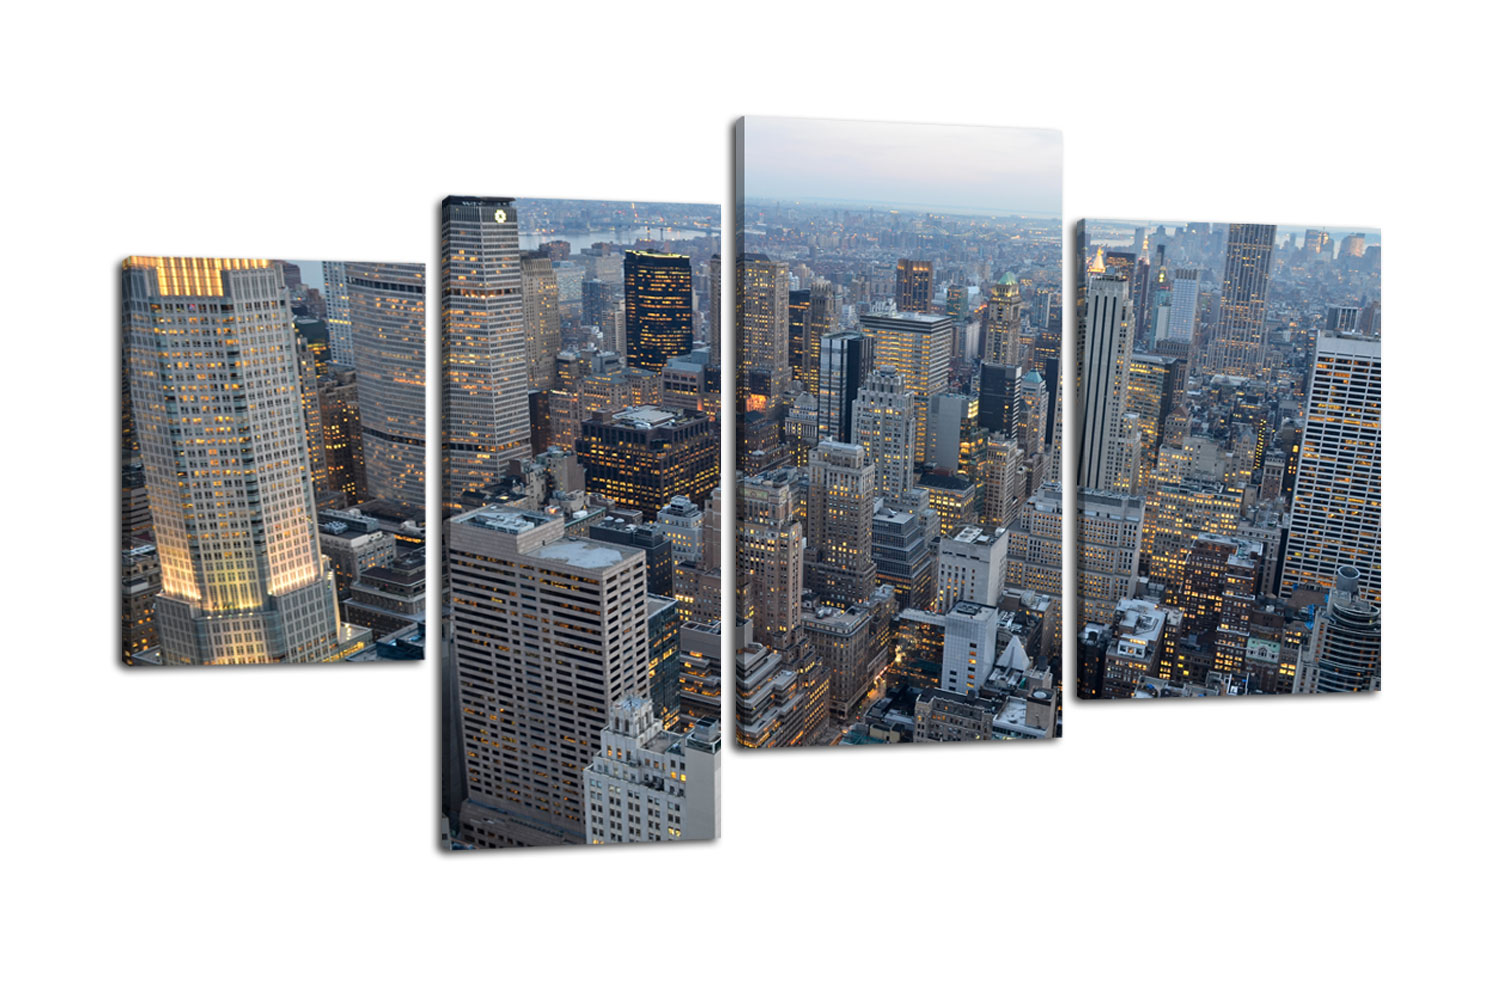 leinwandbild new york skyview bild auf leinwand kunstdruck. Black Bedroom Furniture Sets. Home Design Ideas